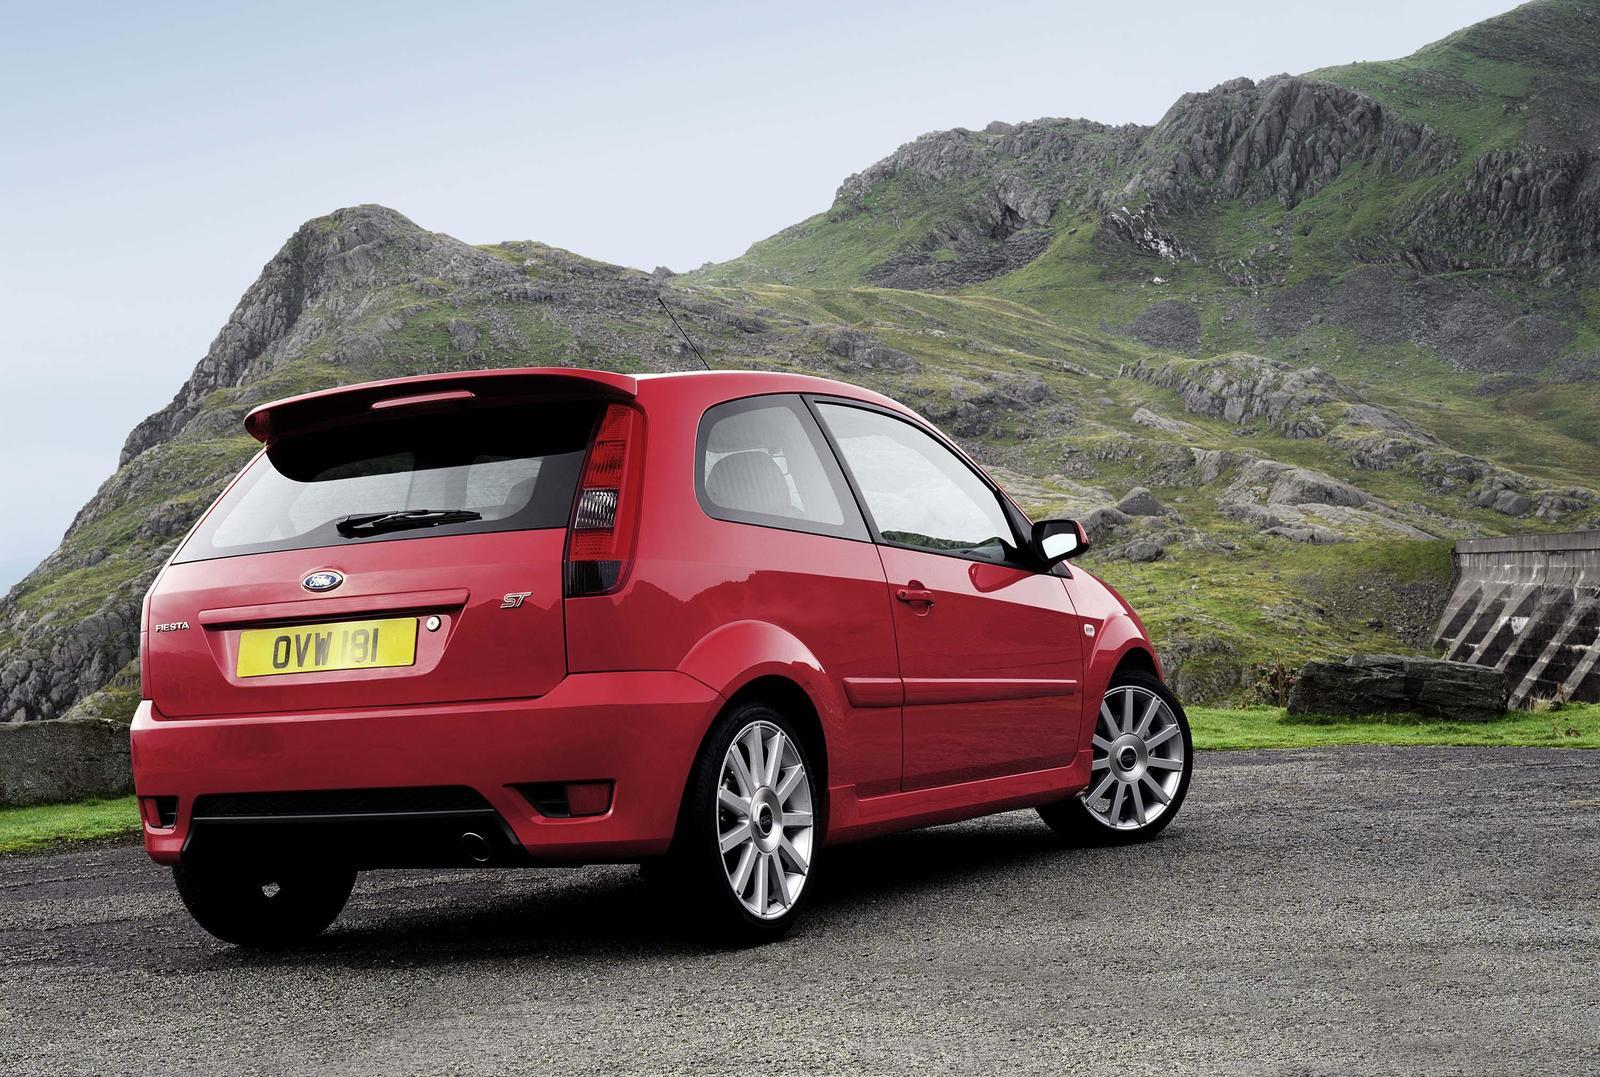 2007 ford fiesta st picture 154425 car review top speed. Black Bedroom Furniture Sets. Home Design Ideas